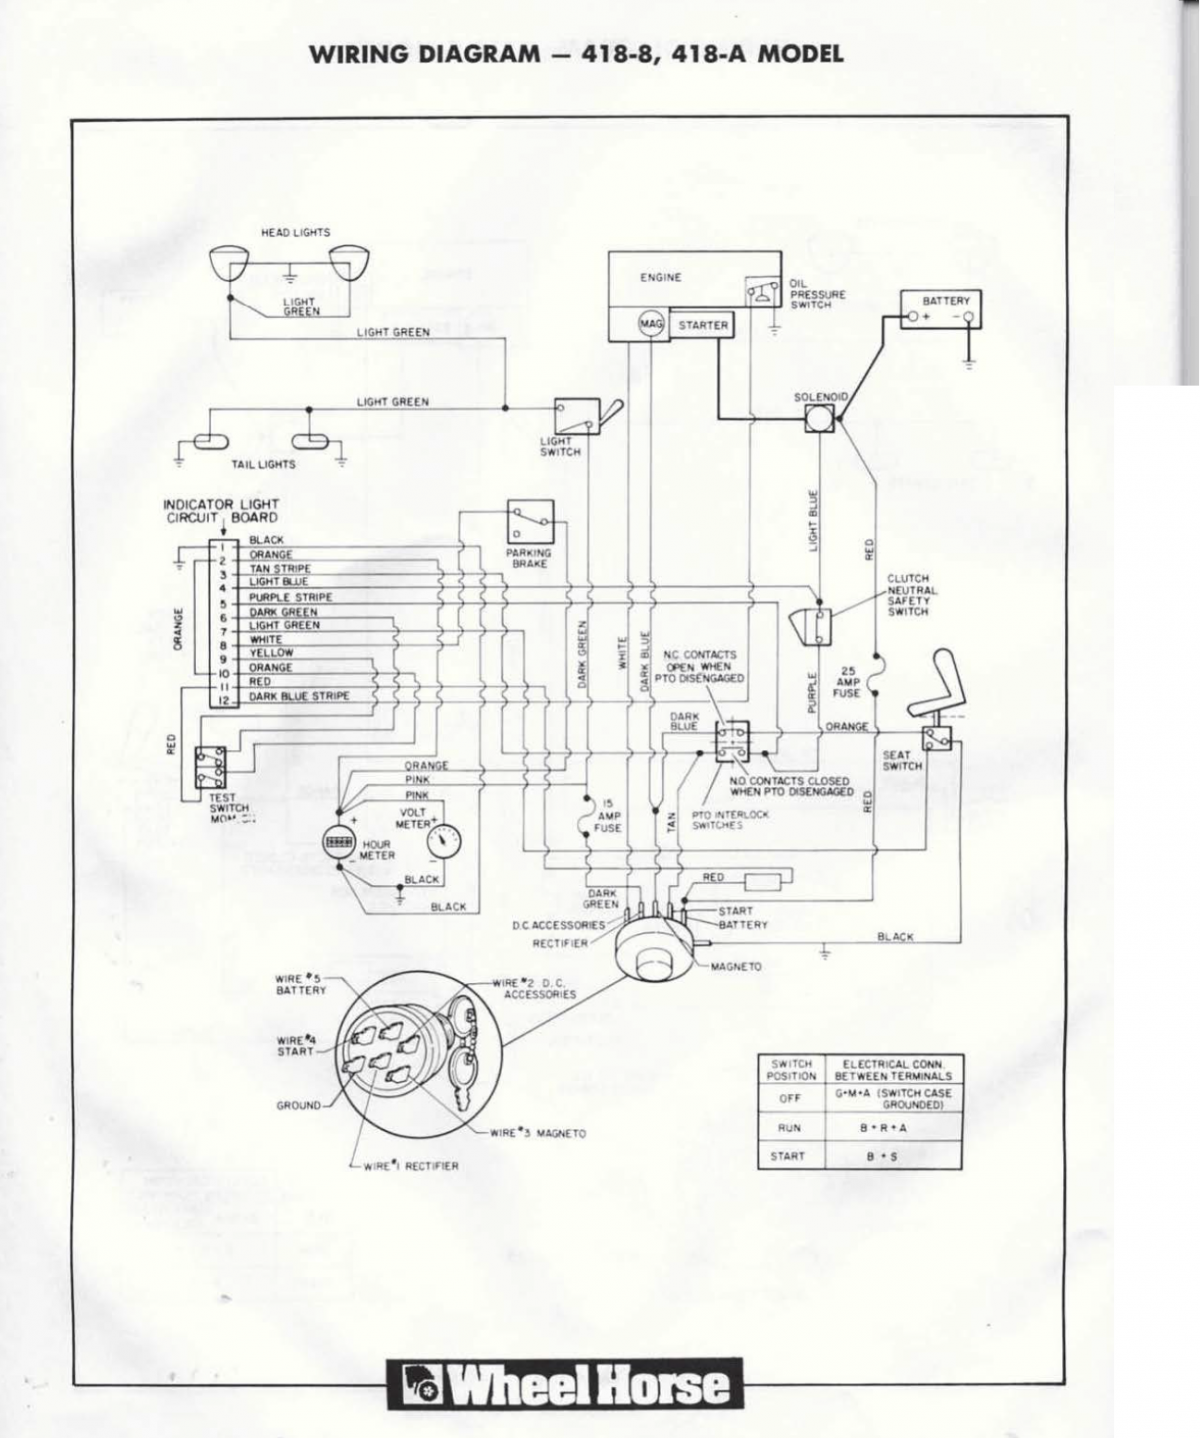 418-a Wiring Diagram Needed    - Wheel Horse Electrical